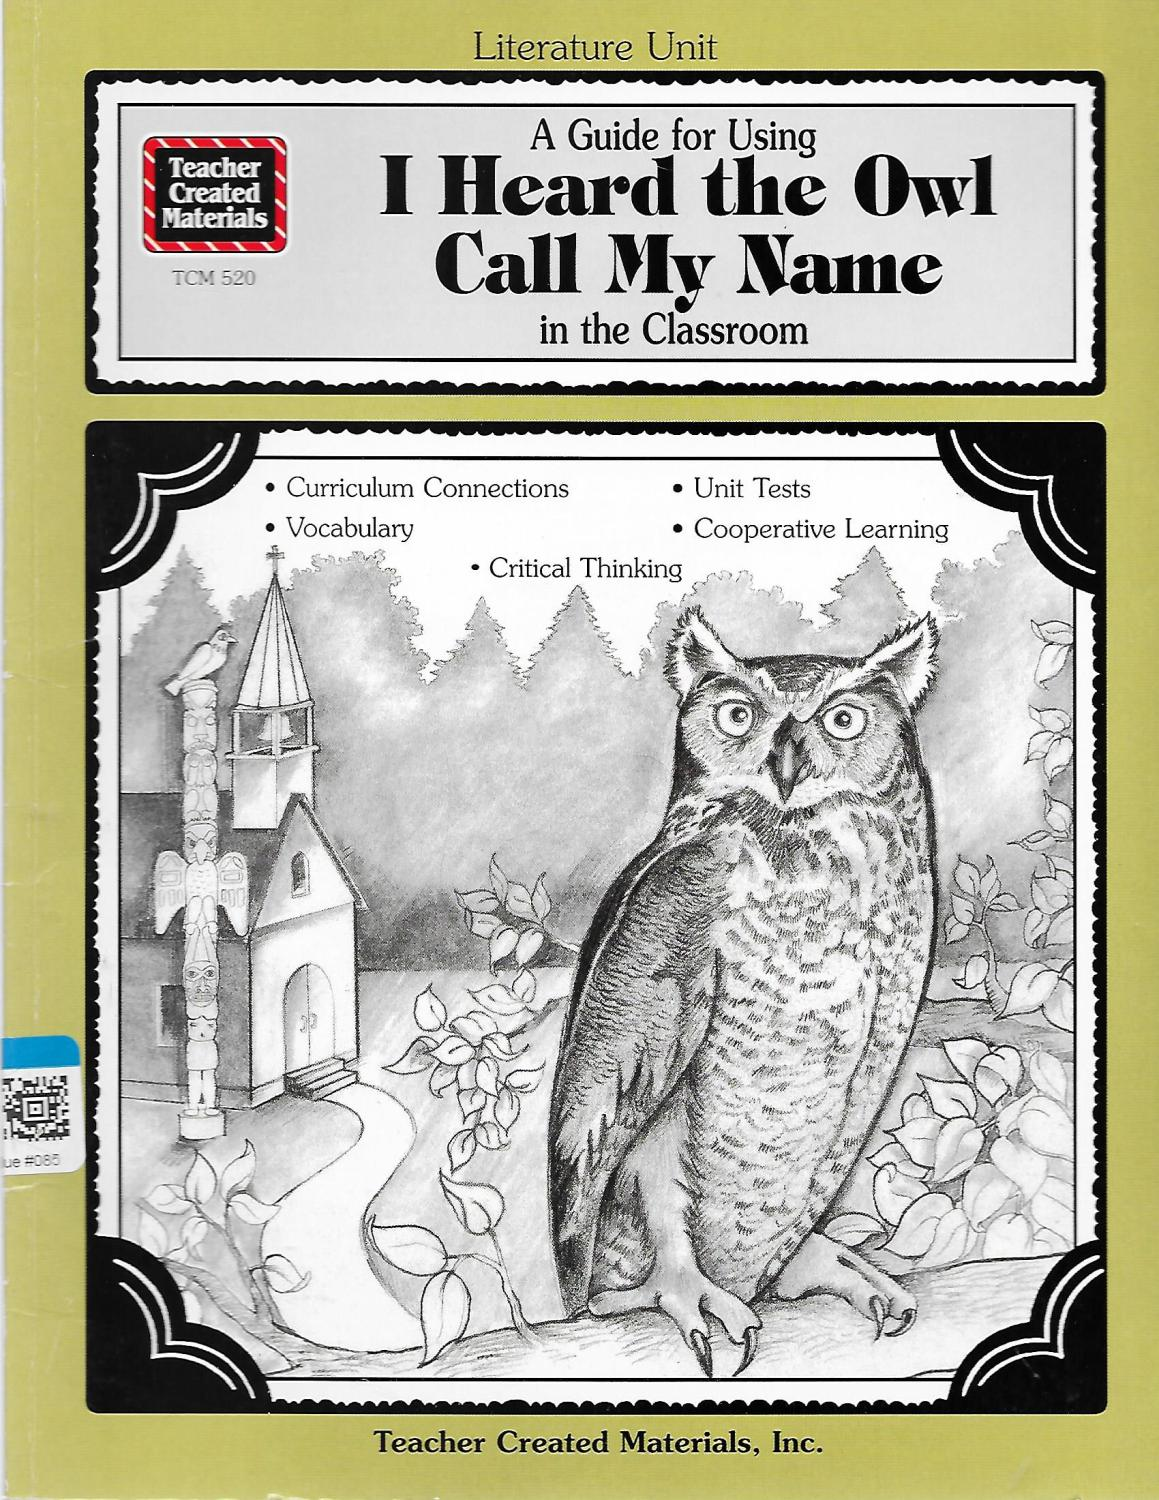 response to i heard the owl 2007 free-response questions the college board: connecting students to college success  a barred owl the warping night air having brought the boom of an owl's voice into her darkened room, we tell the wakened child that all she heard was an odd question from a.